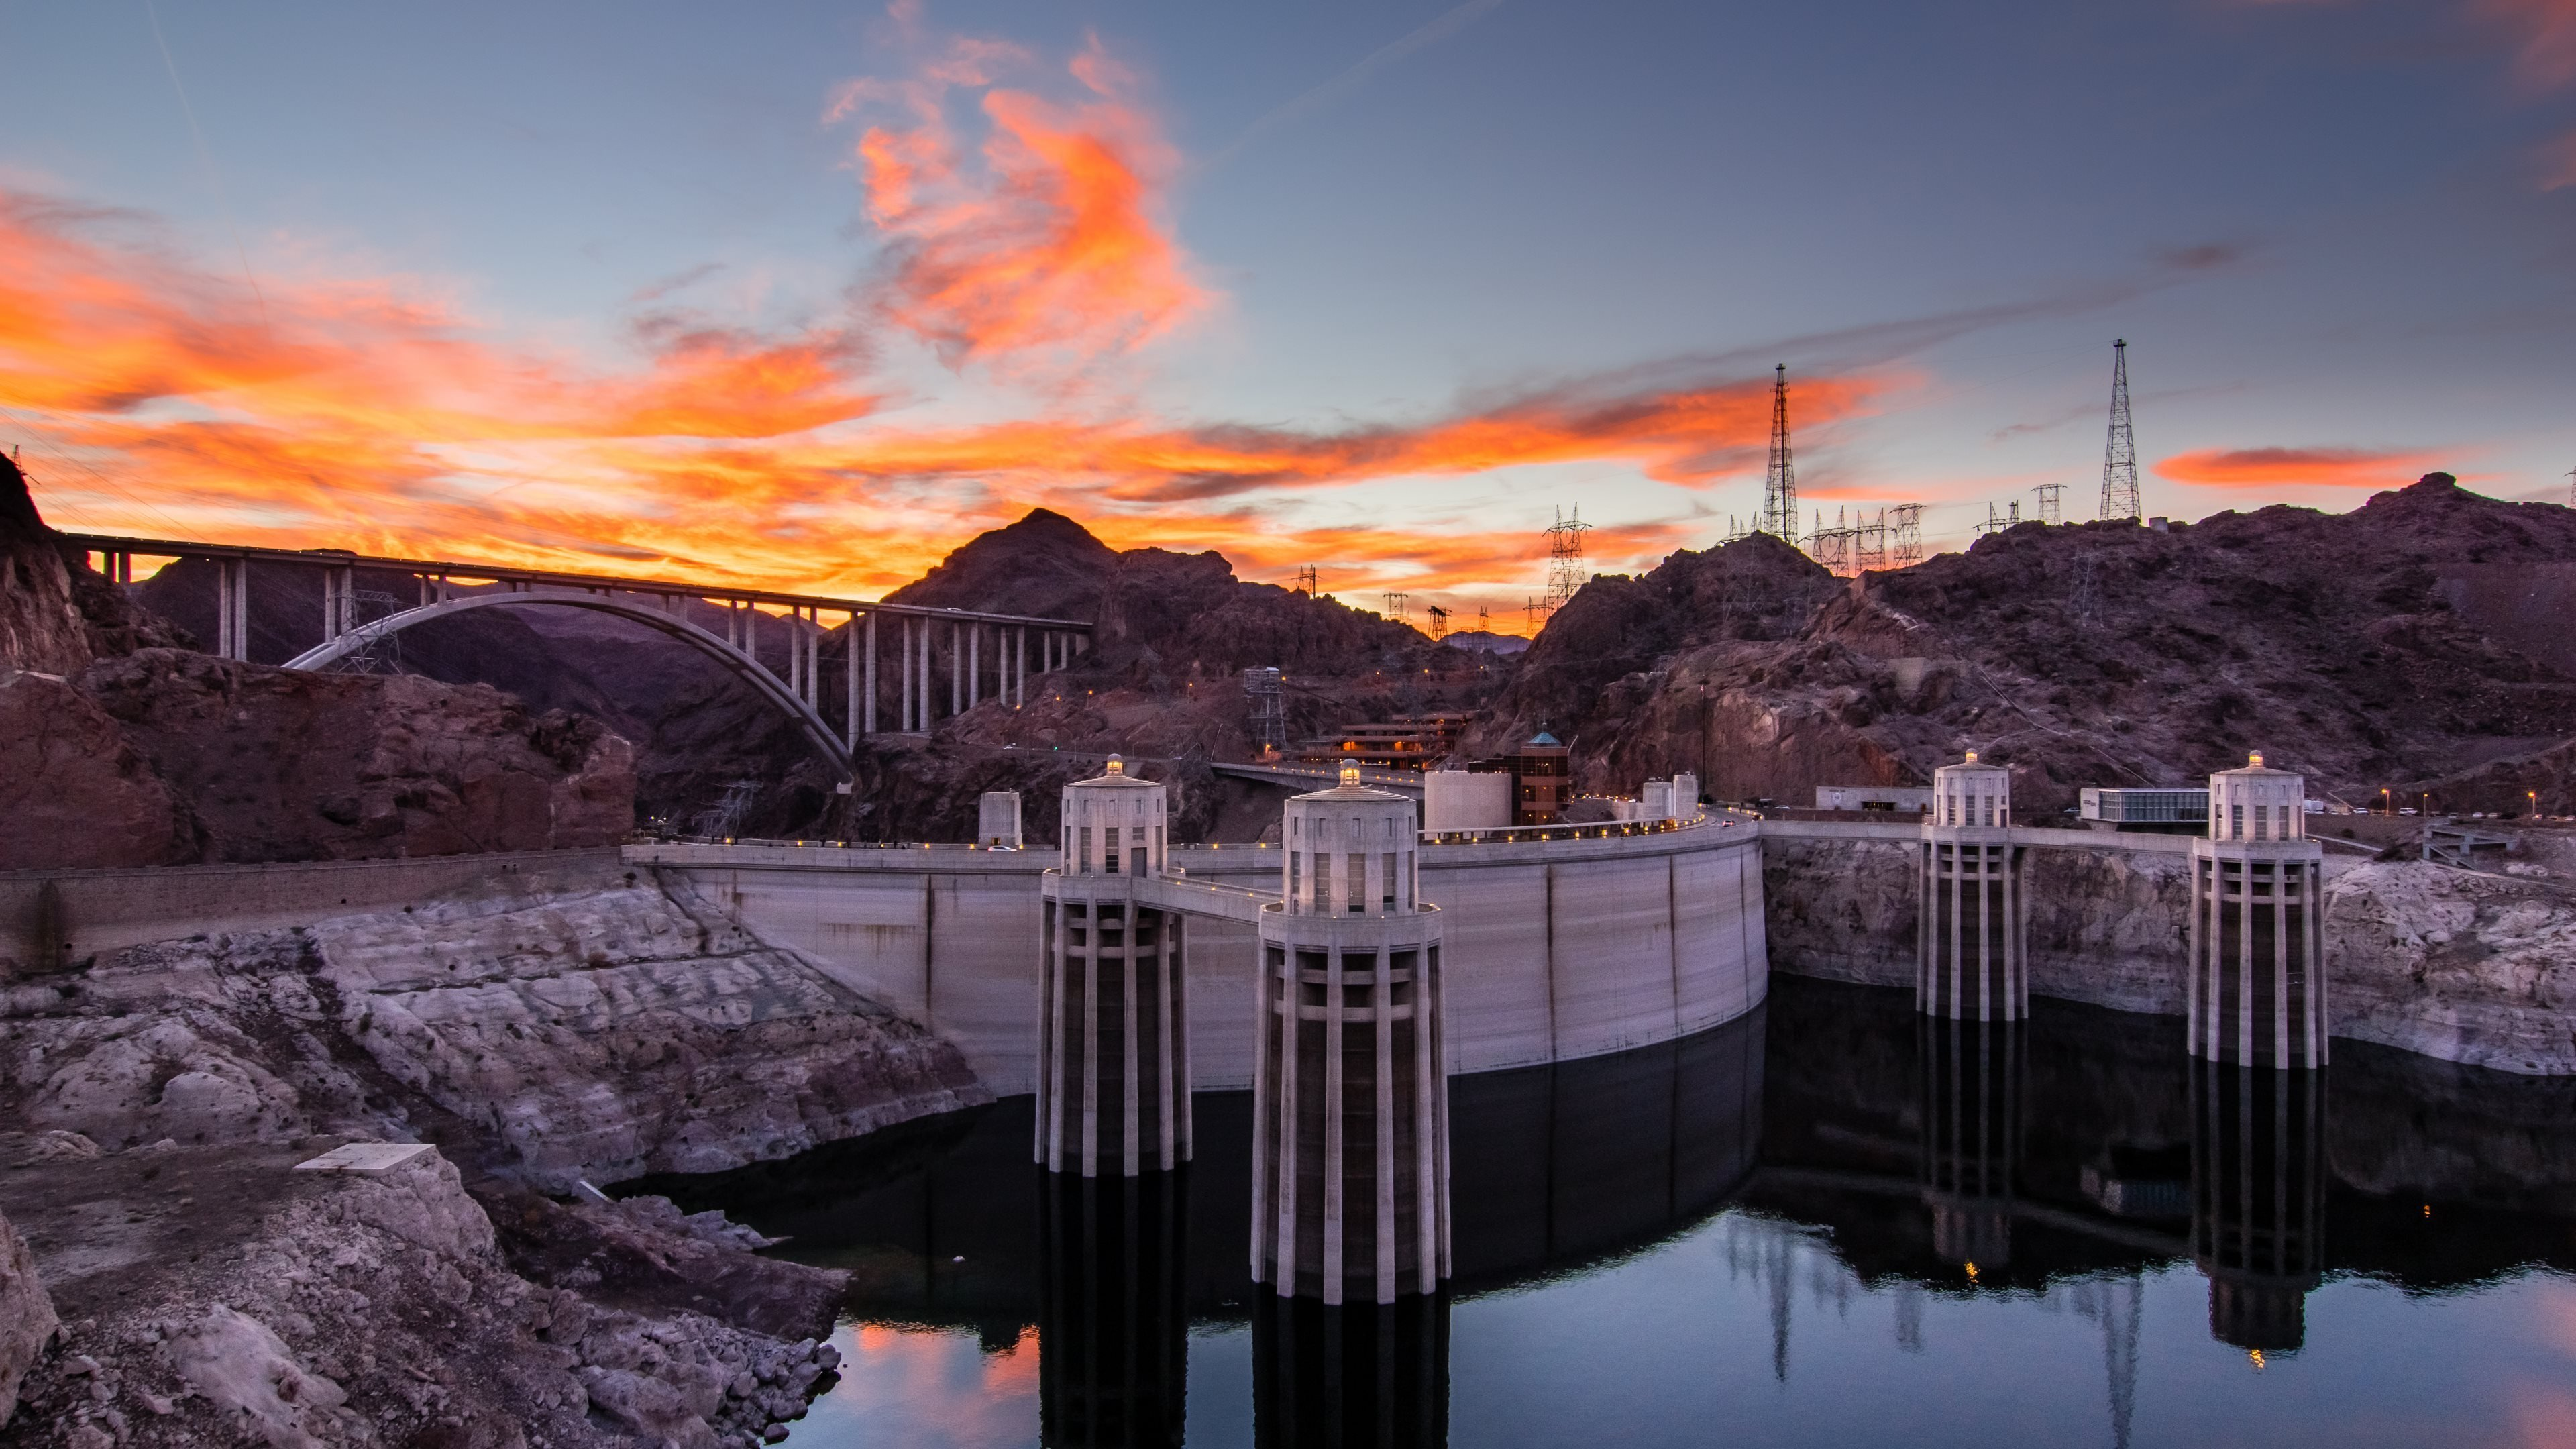 Magnificent view with Hoover Dam wallpaper 3840x2160 796356 3840x2160